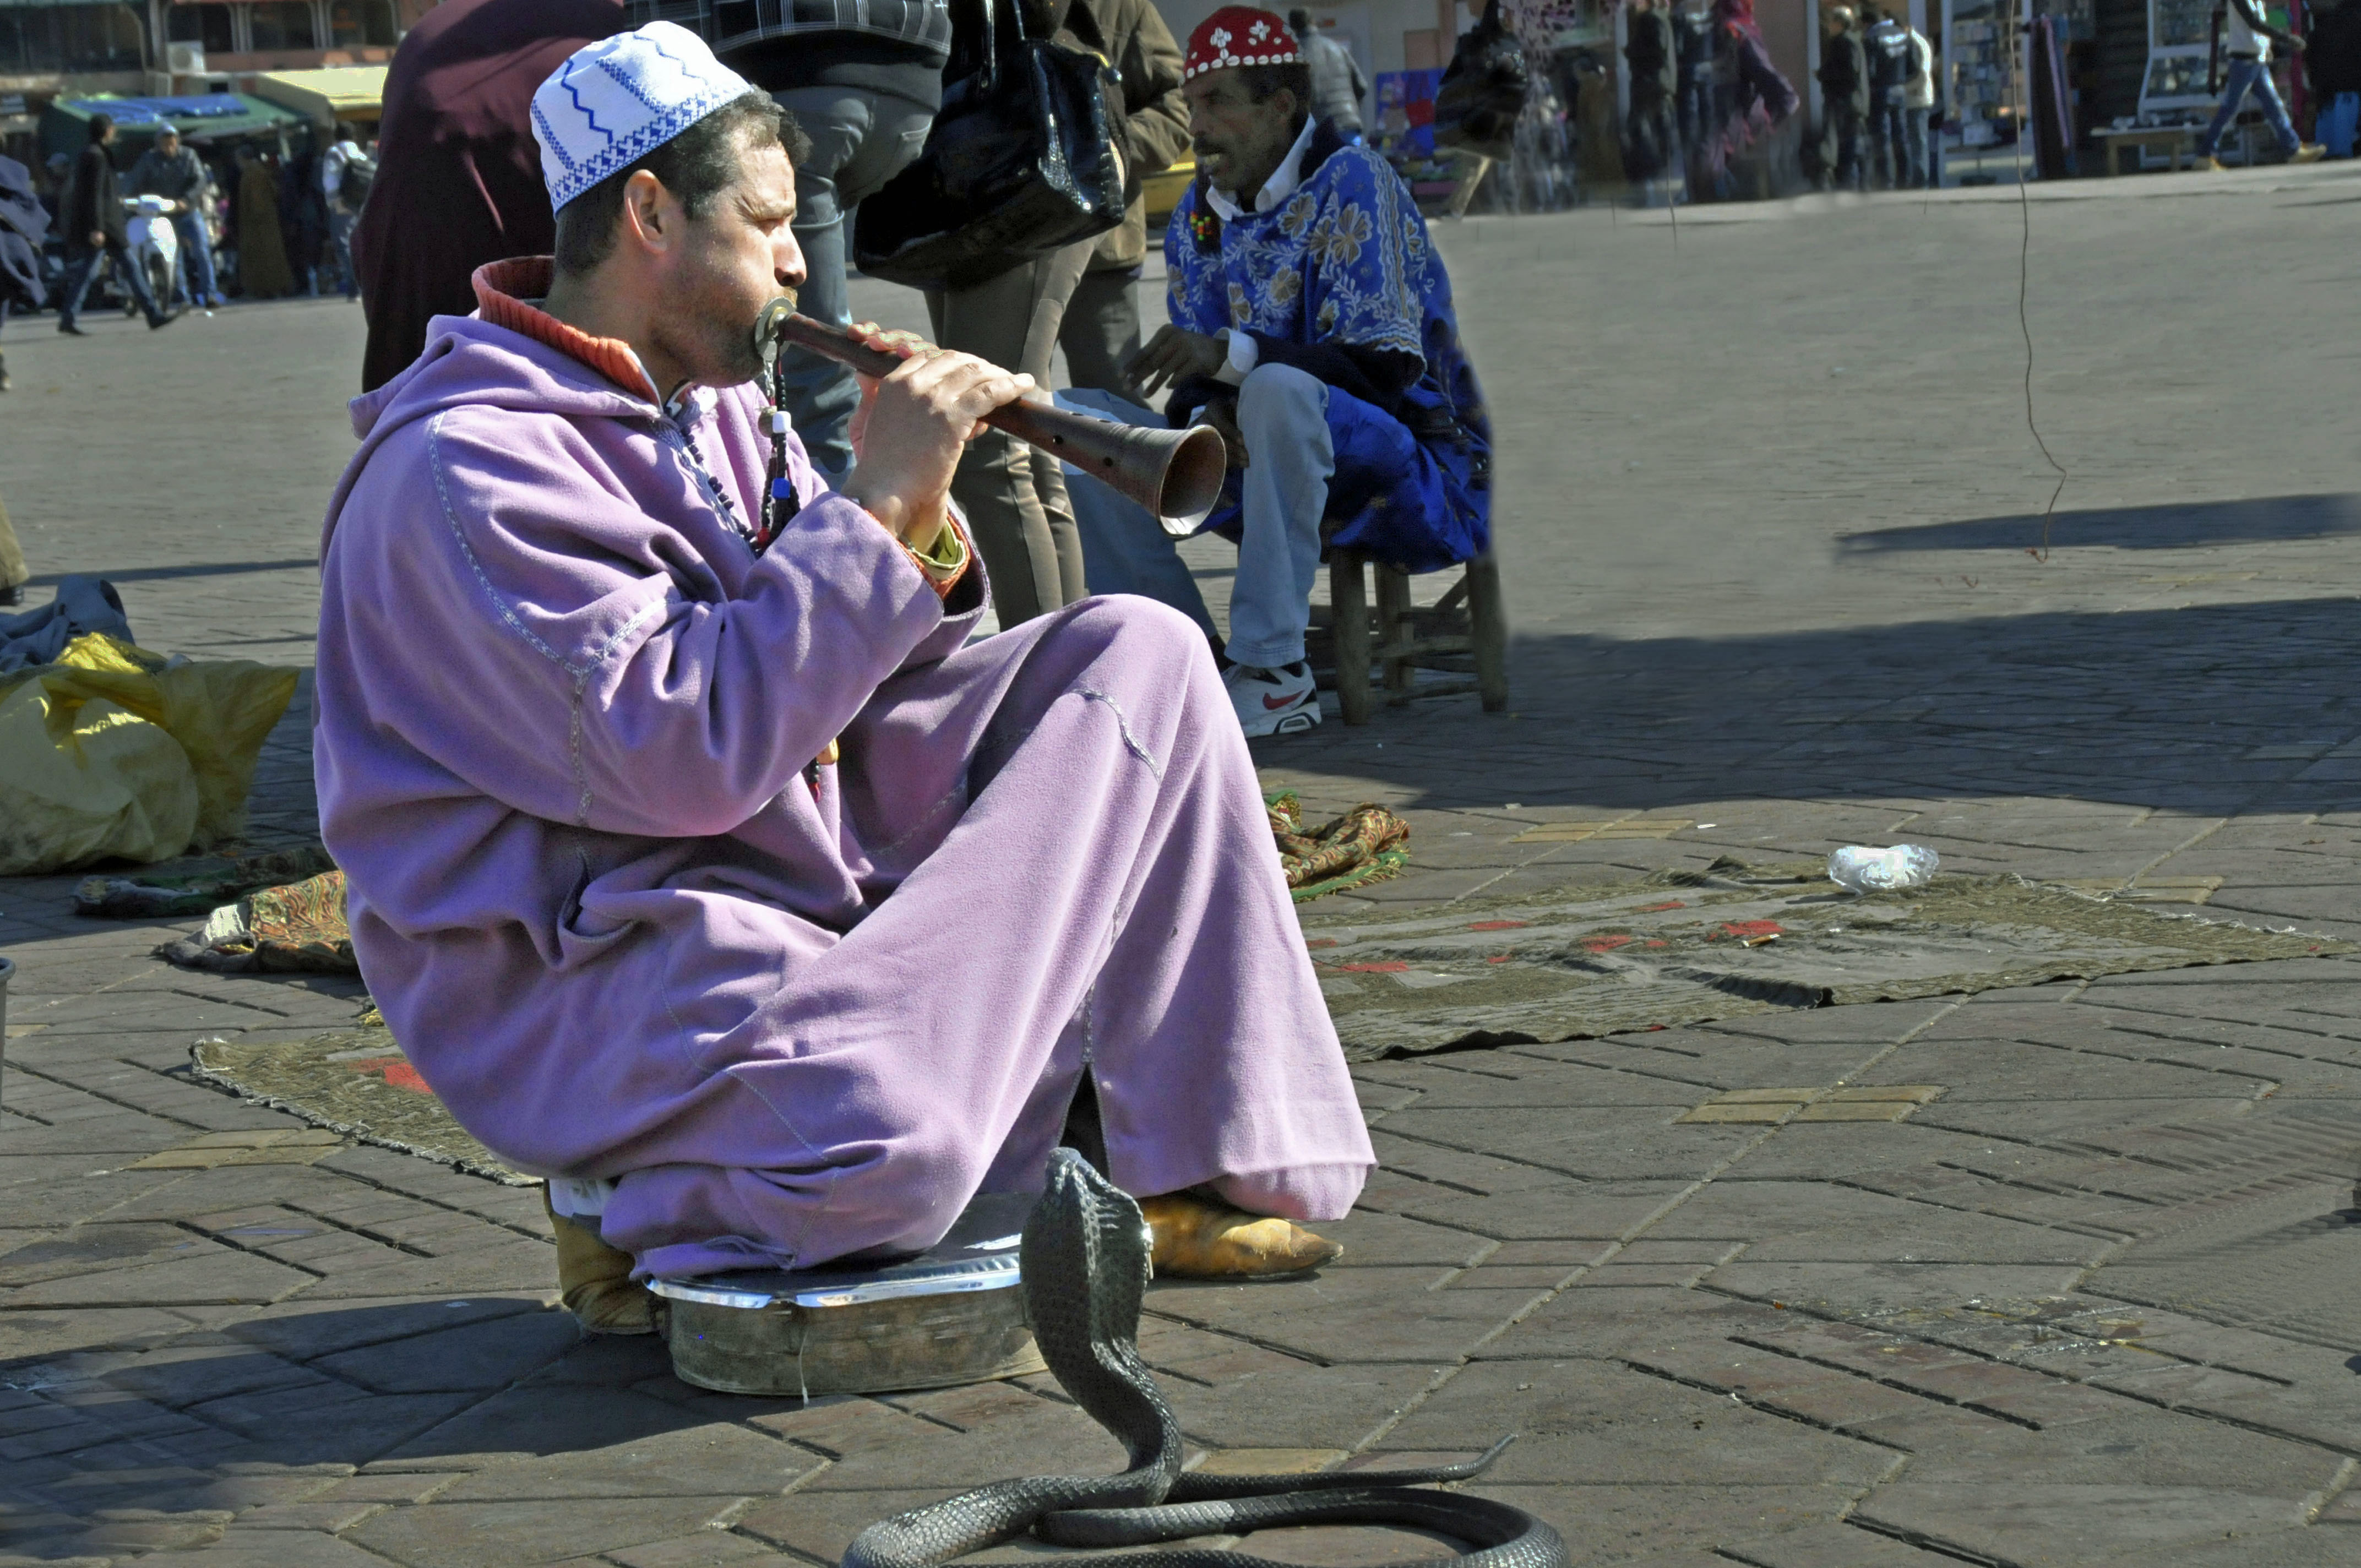 Snake Charmer on the Square in Marrakesh, Morocco. (Photo by Don Knebel)